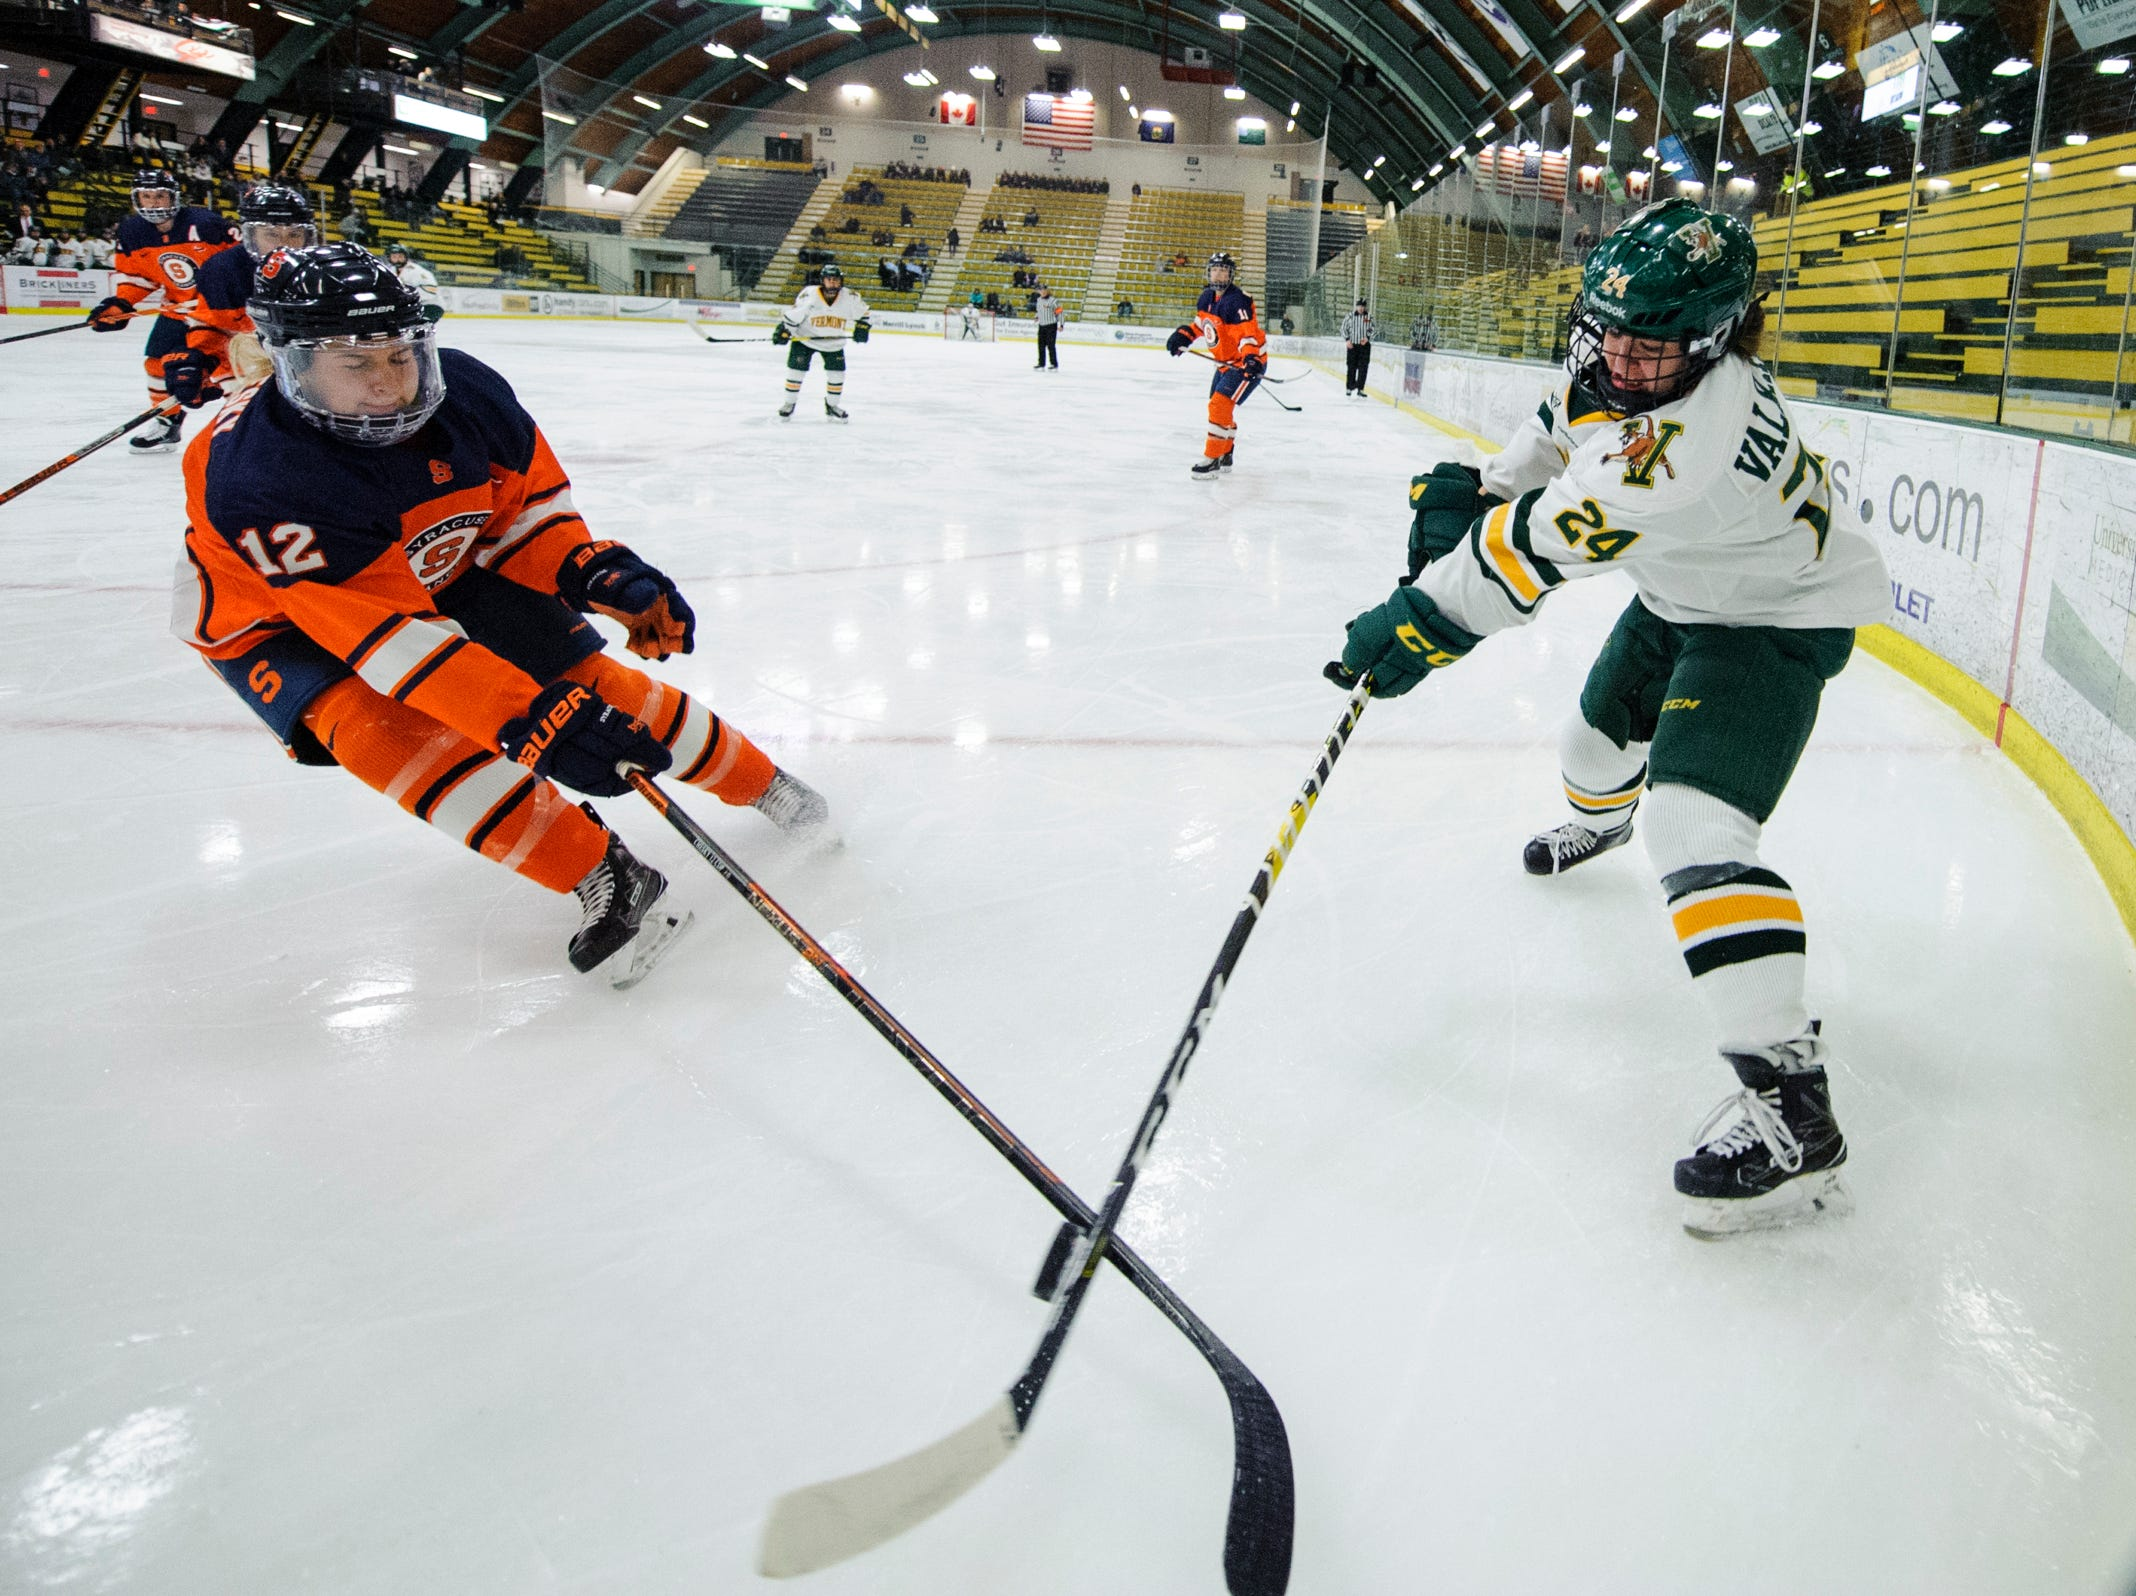 Vermont's Saana Valkama (24) battles for the puck with Syracuse' Kristen Siemachesky (12) during the women's hockey game between the Syracuse Orange and the Vermont Catamounts at Gutterson Field House on Friday night November 23, 2018 in Burlington.